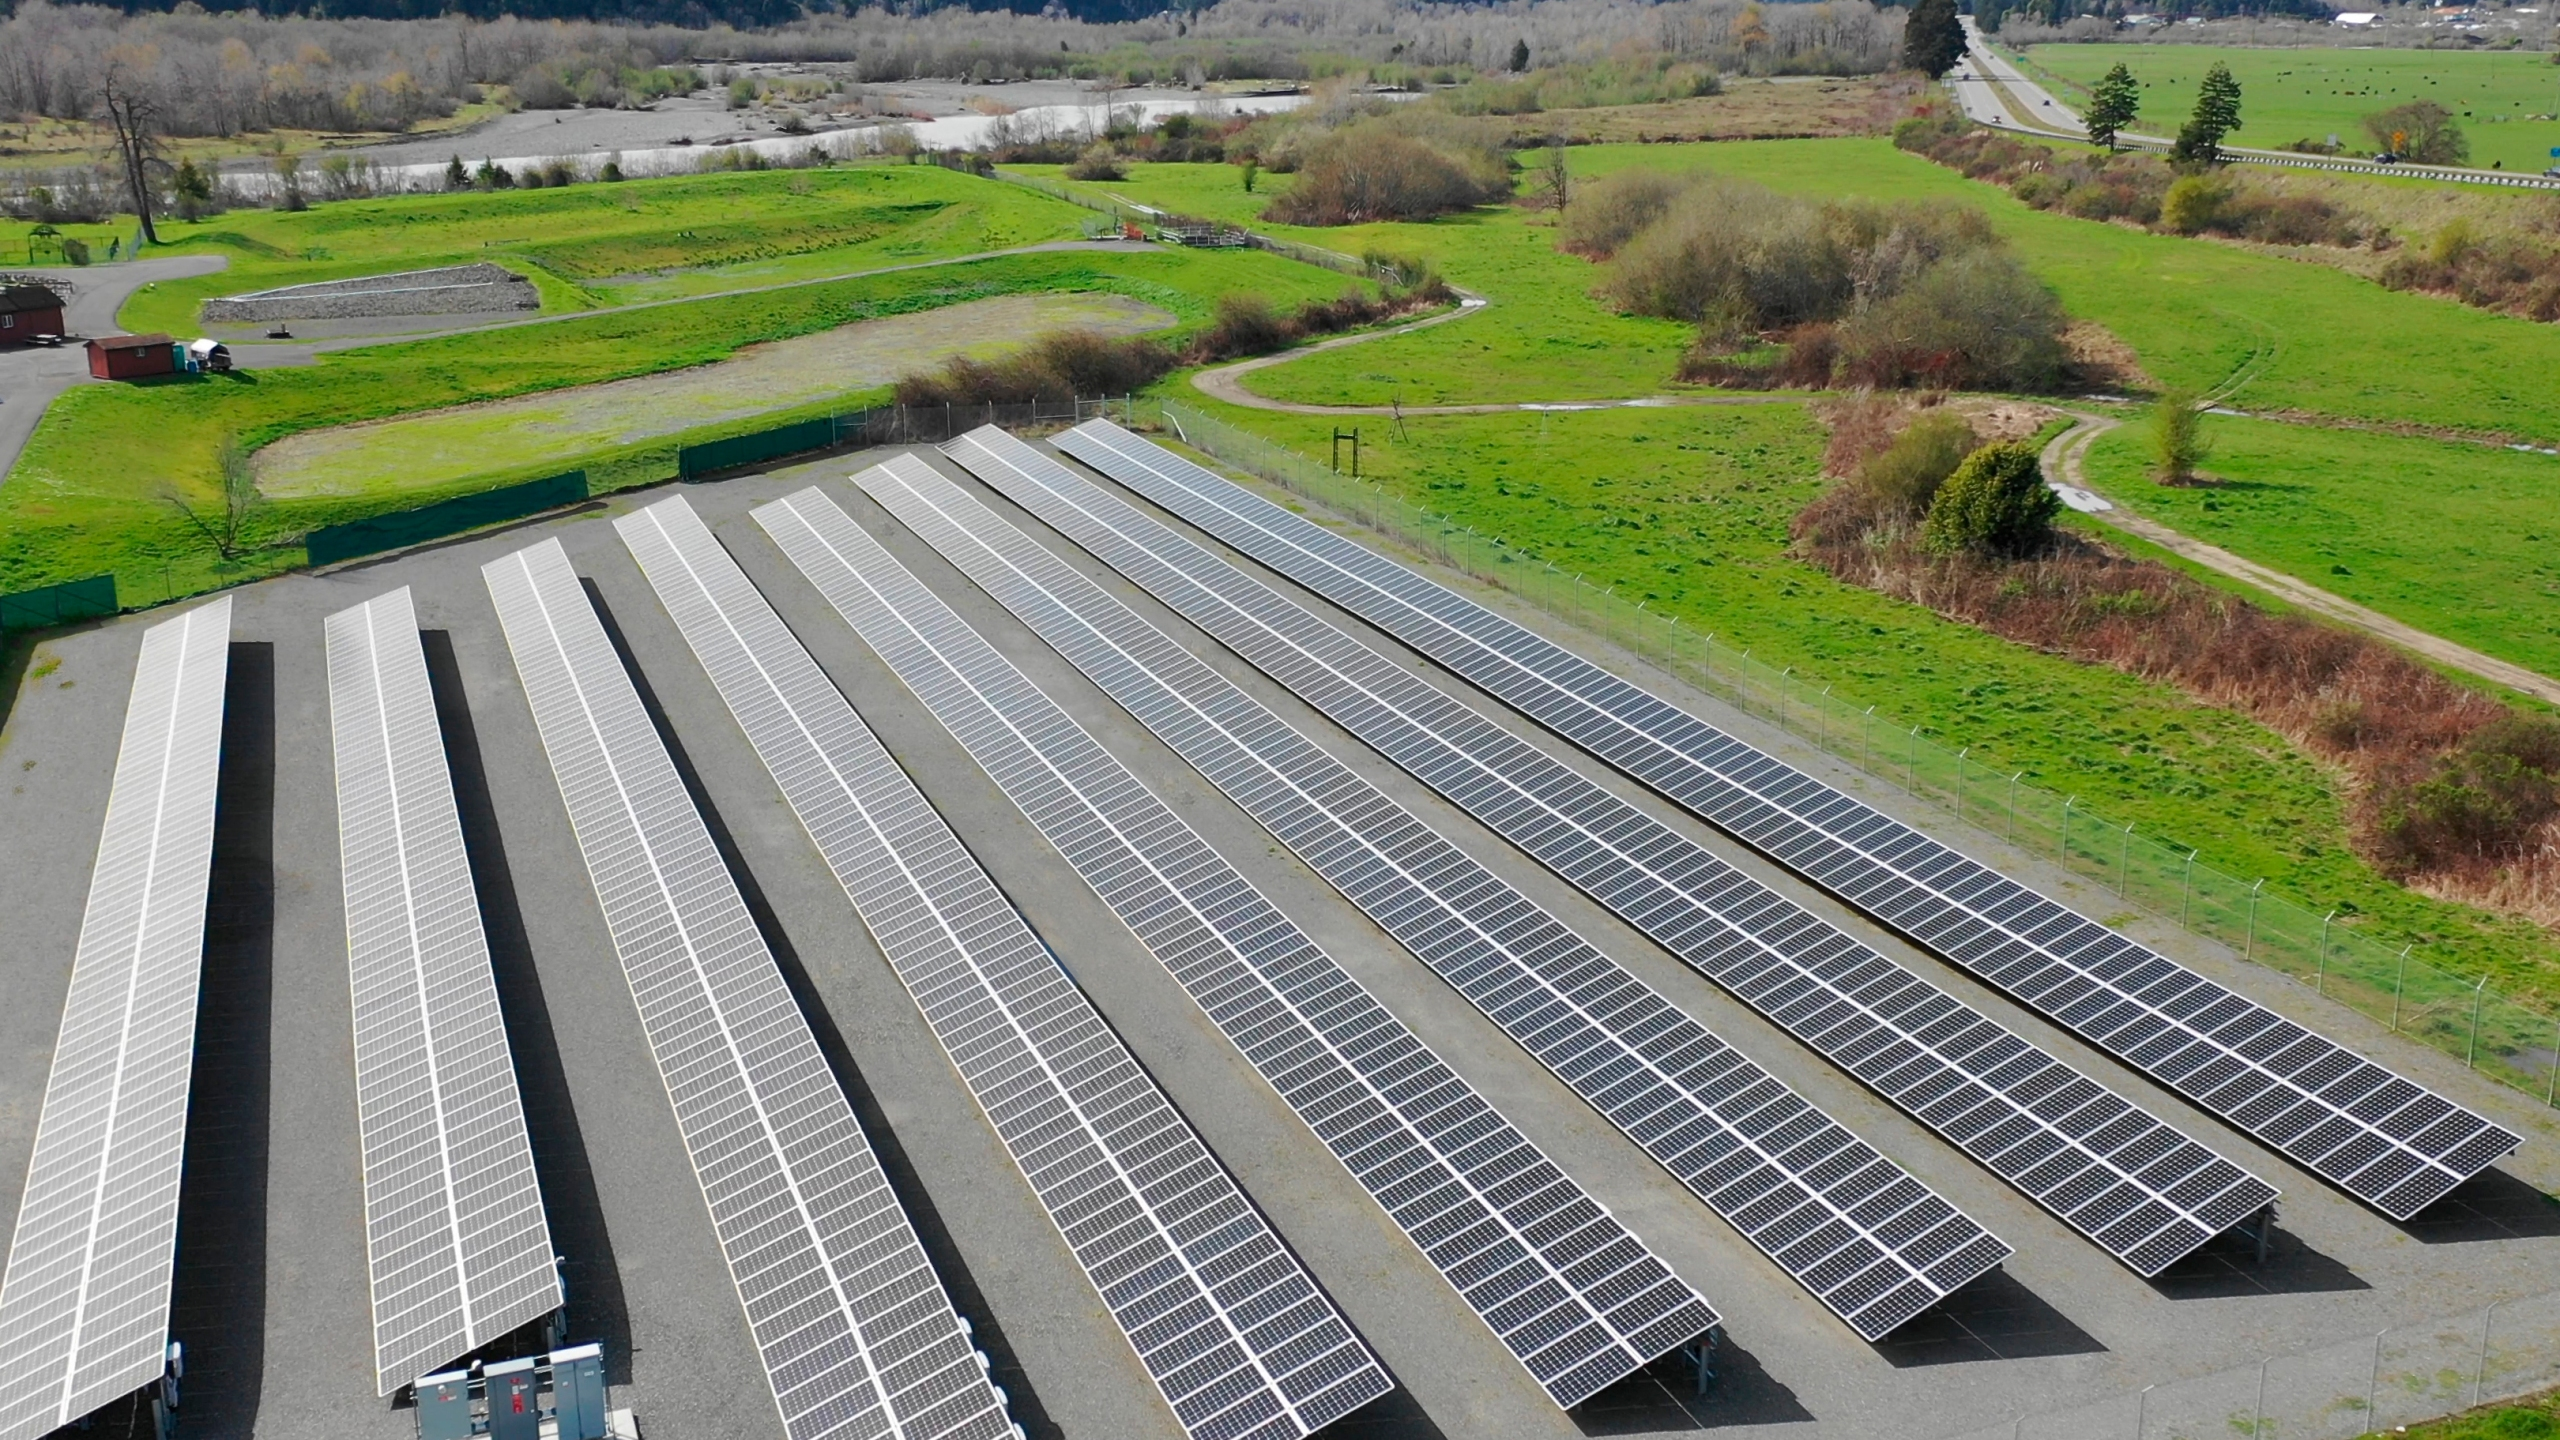 This aerial photo provided by the Blue Lake Rancheria shows a solar array that is paired with a microgrid in Blue Lake, Calif., in 2017. (Blue Lake Rancheria via AP)